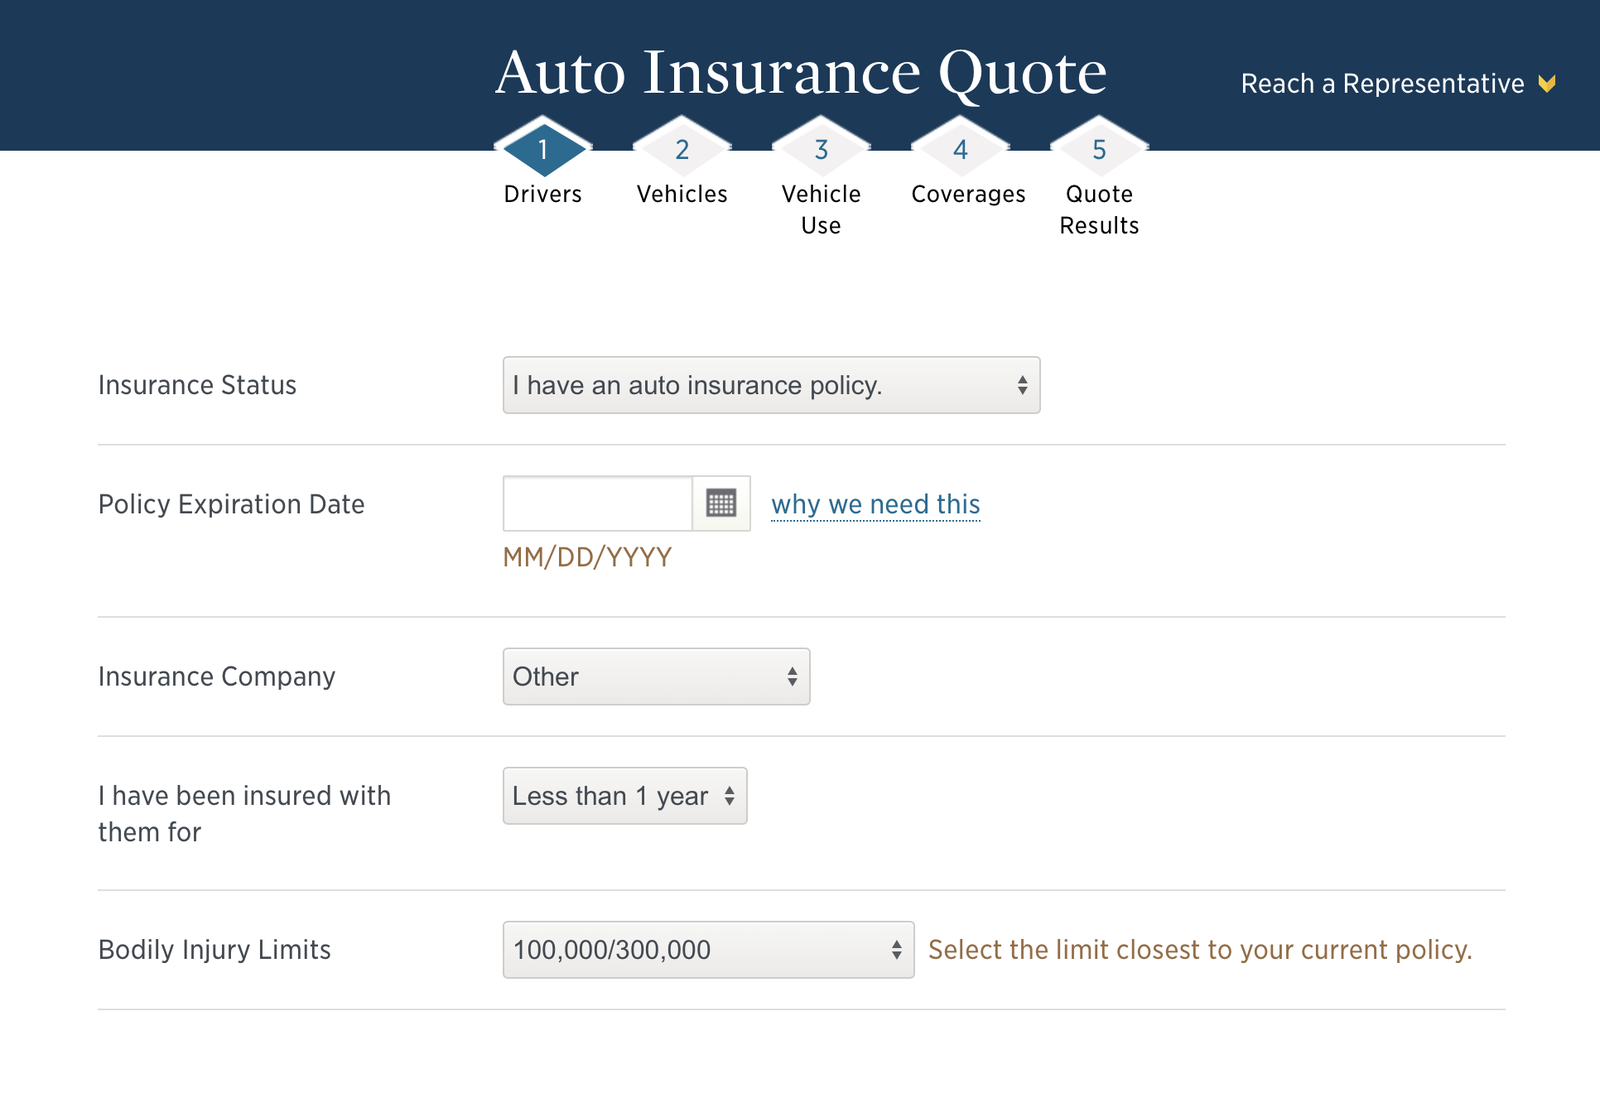 Steps for getting a USAA quote